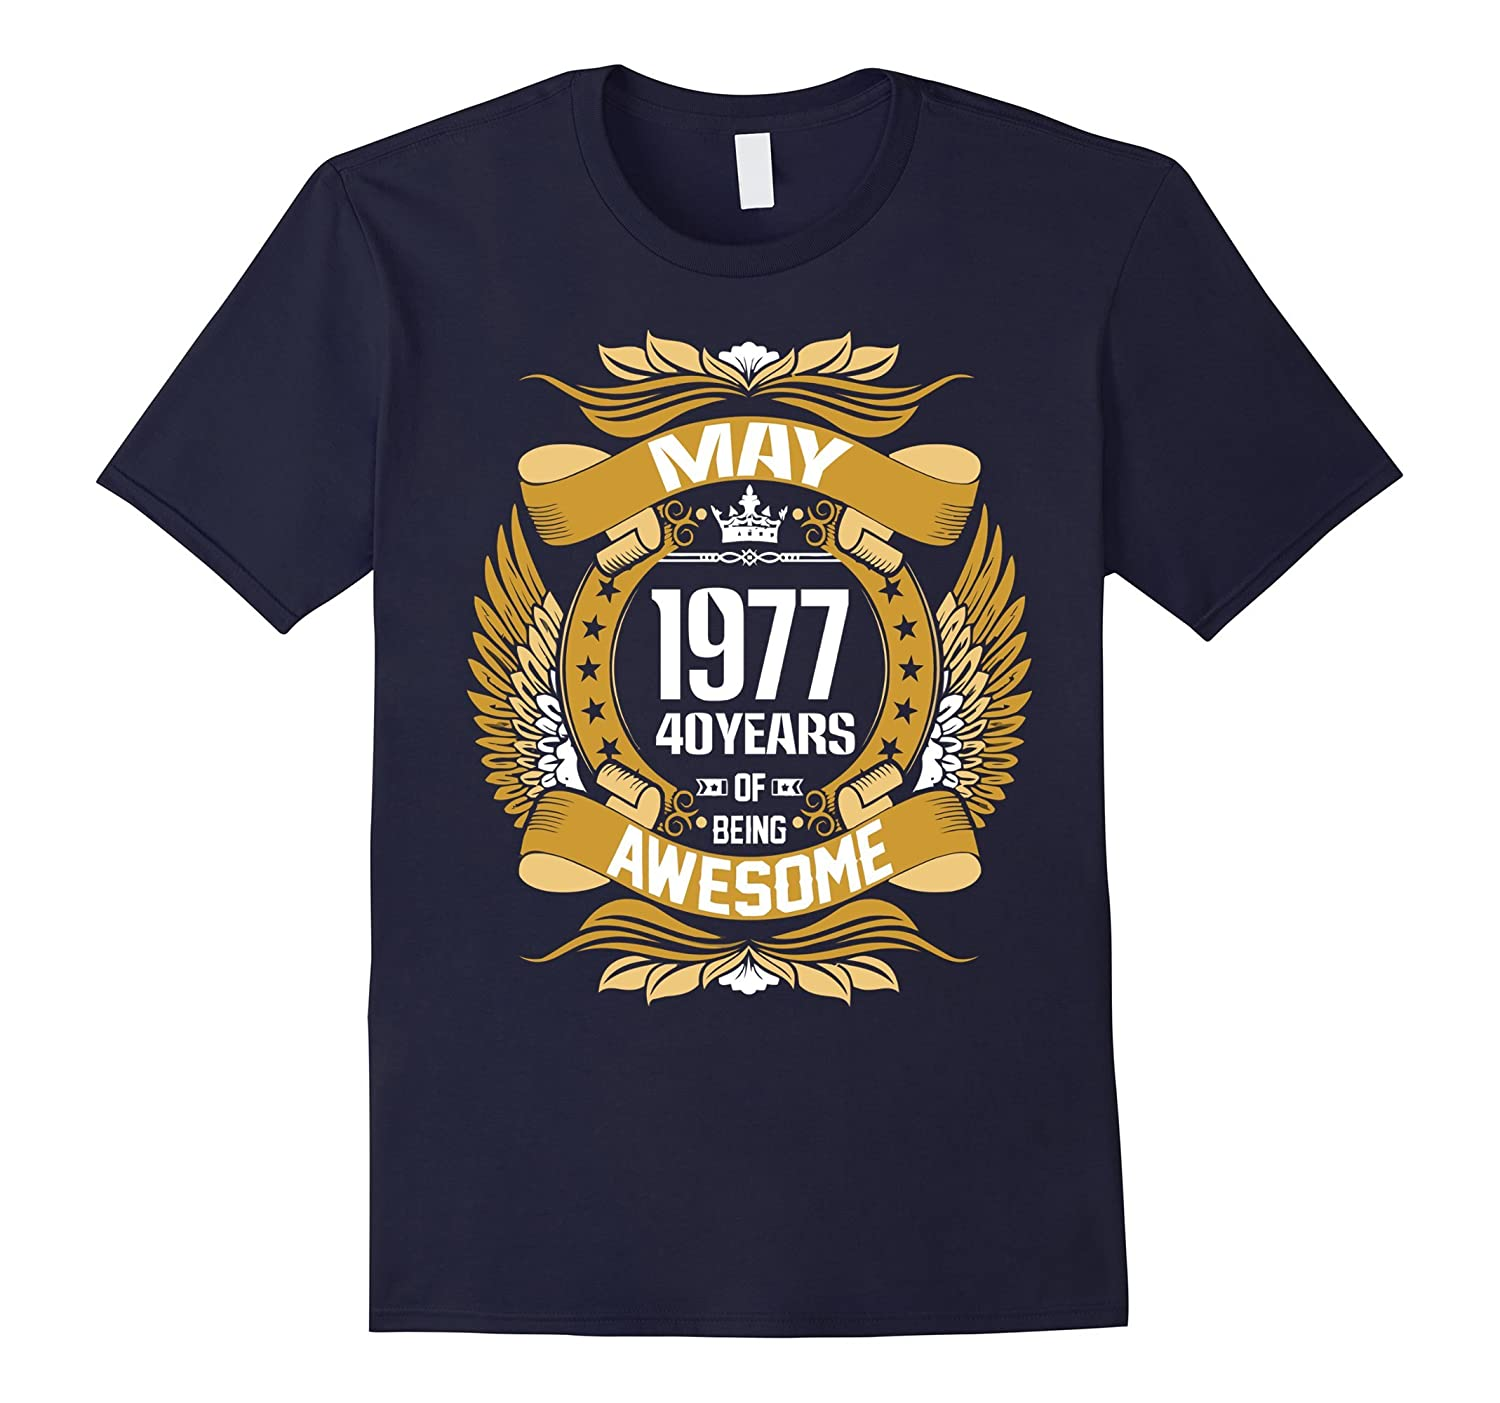 May 1977 40 years of being awesome t shirt-Vaci